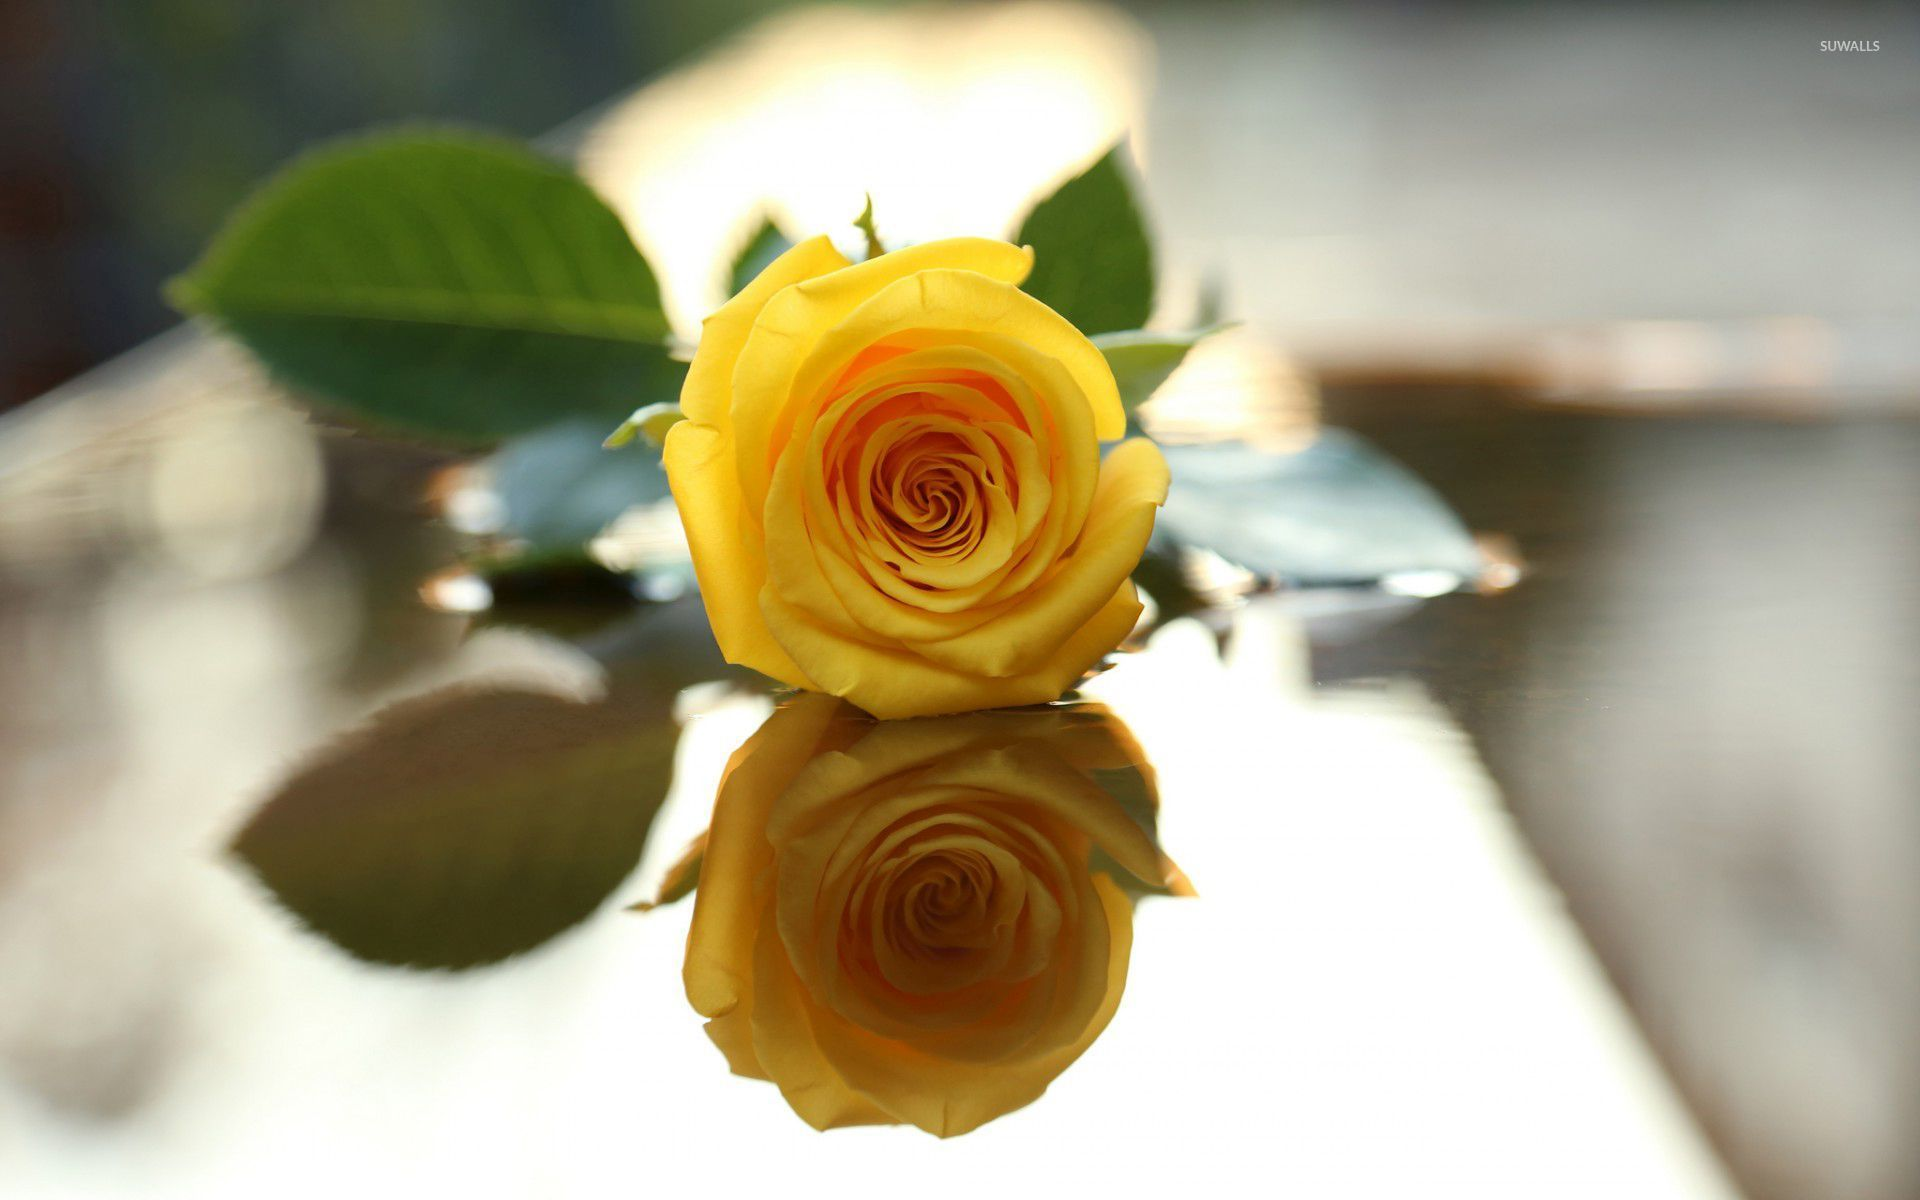 yellow rose [3] wallpaper - flower wallpapers - #33592